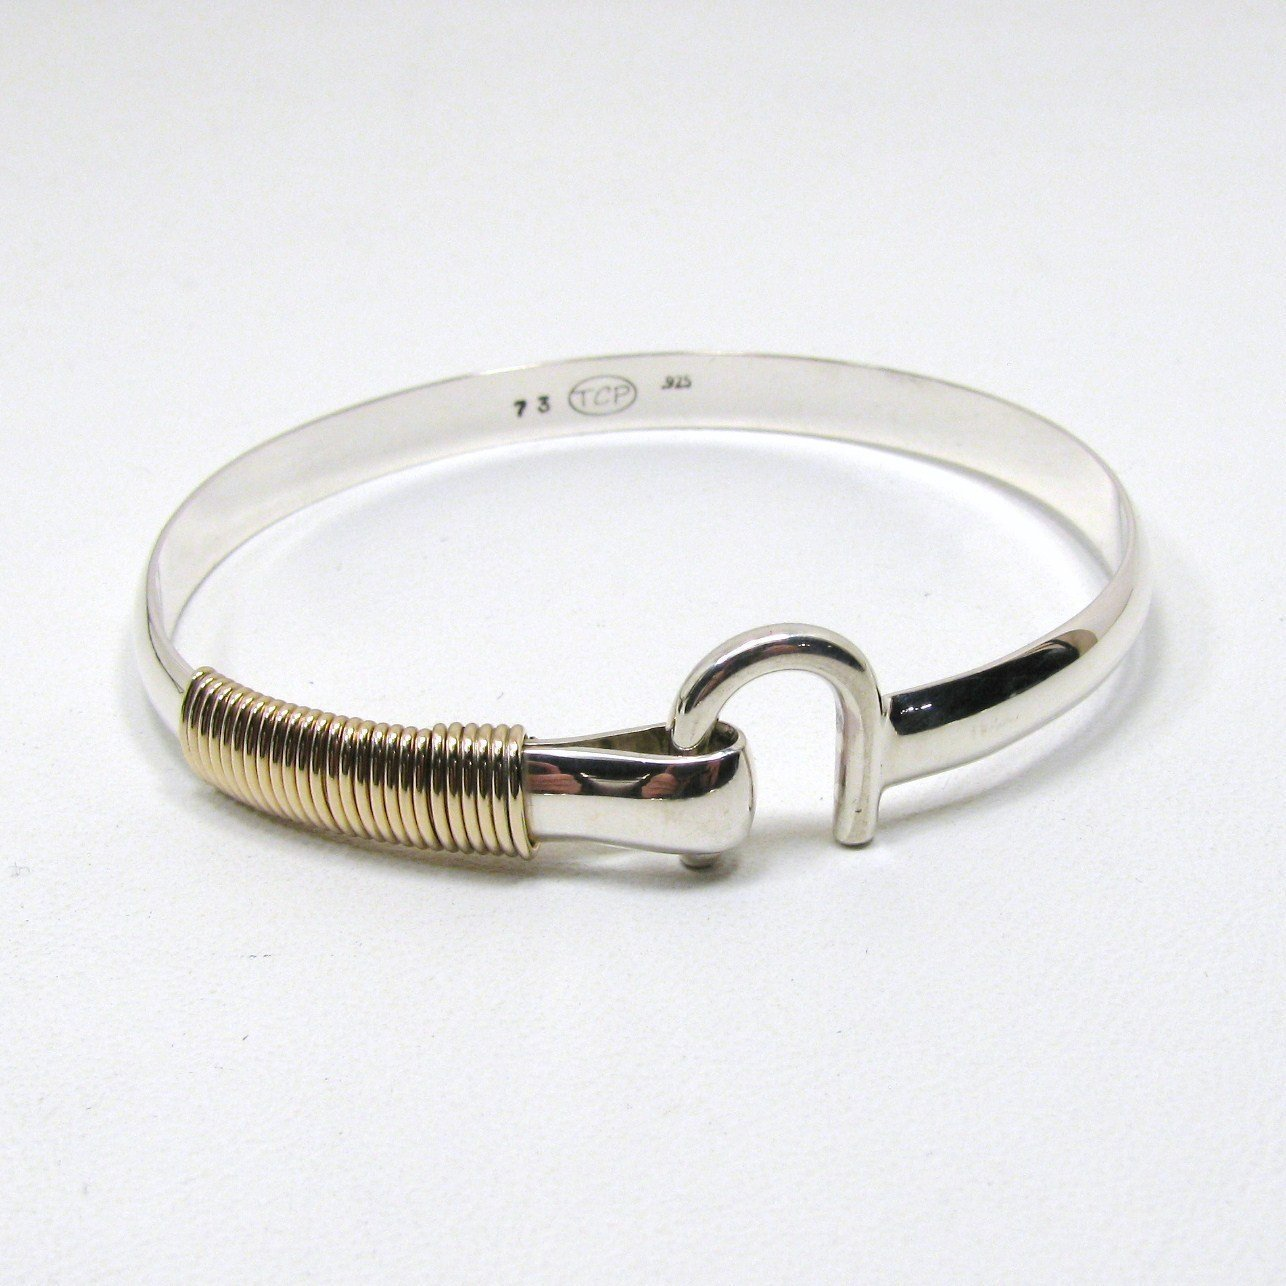 St. Croix Hook Bracelet, Sterling Silver and 14K Gold Fill Hook Braclet 6 mm Wide, Island Love Bracelet